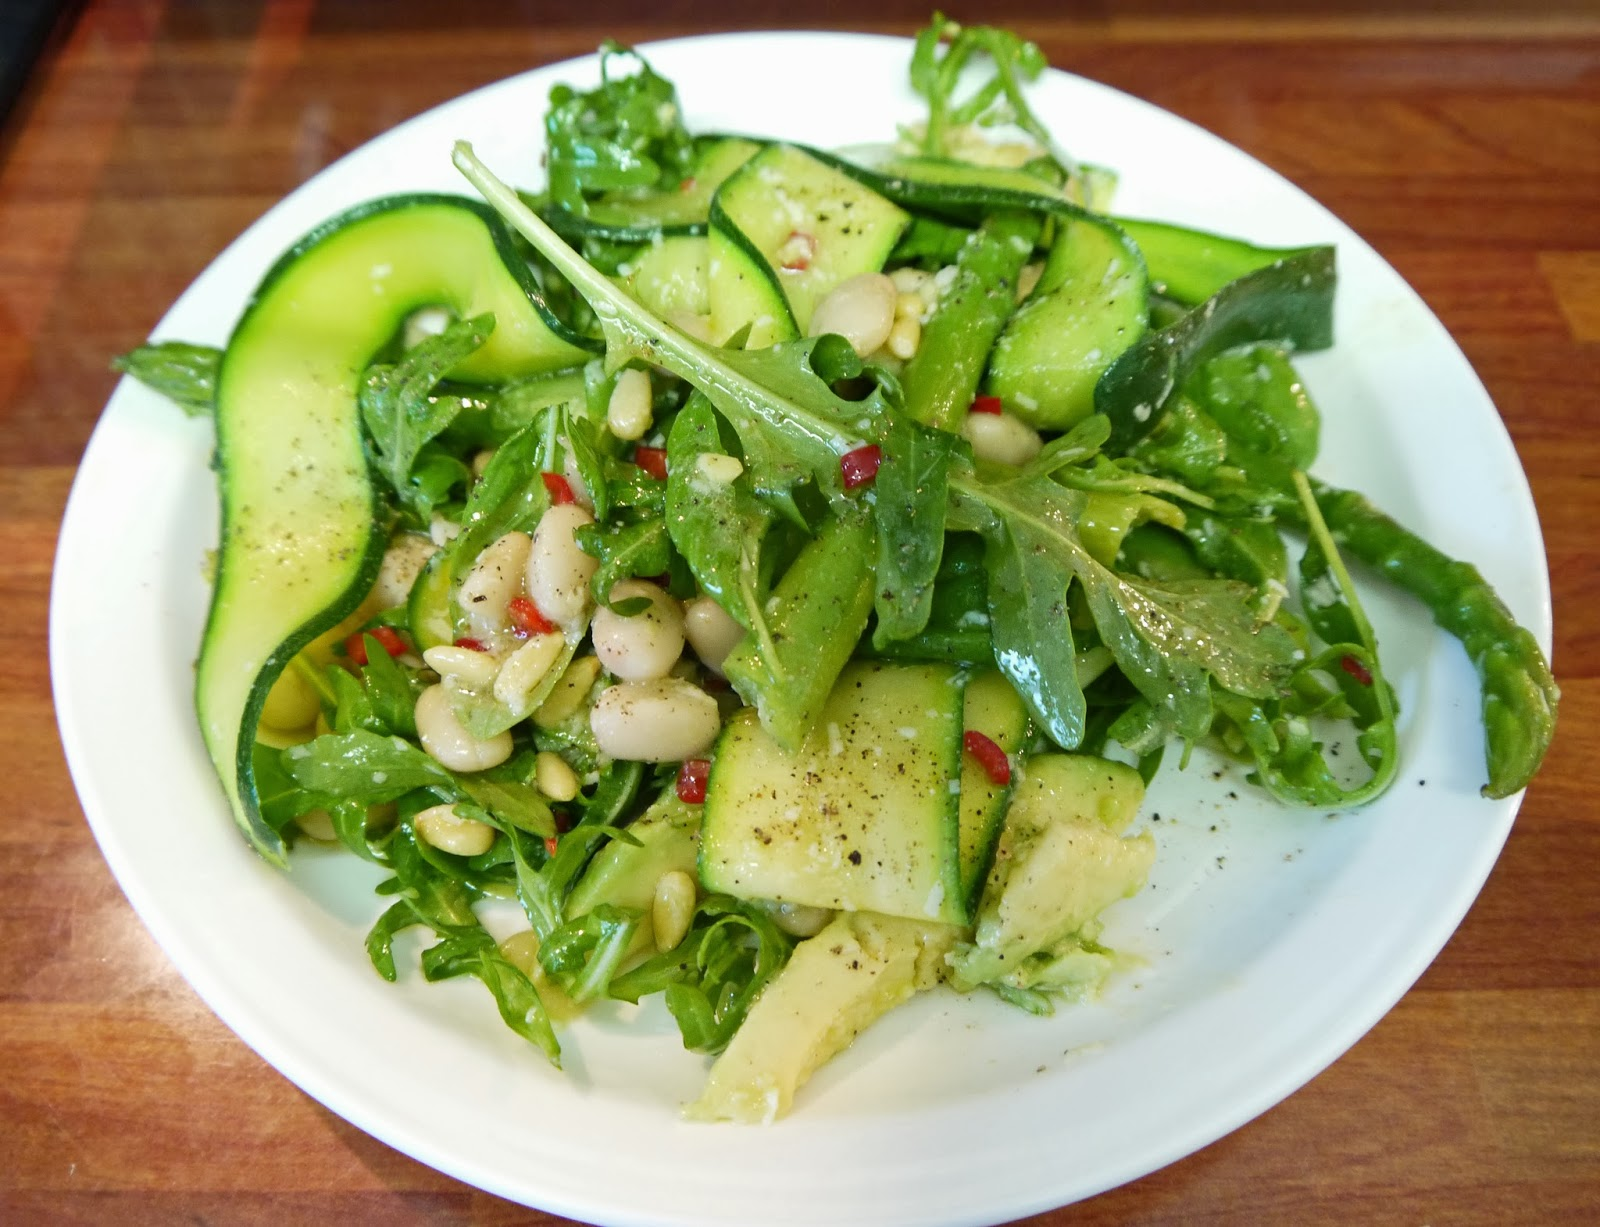 Courgette,+asparagus+and+avocado+salad+with+rocket,+July+2013+(2).JPG